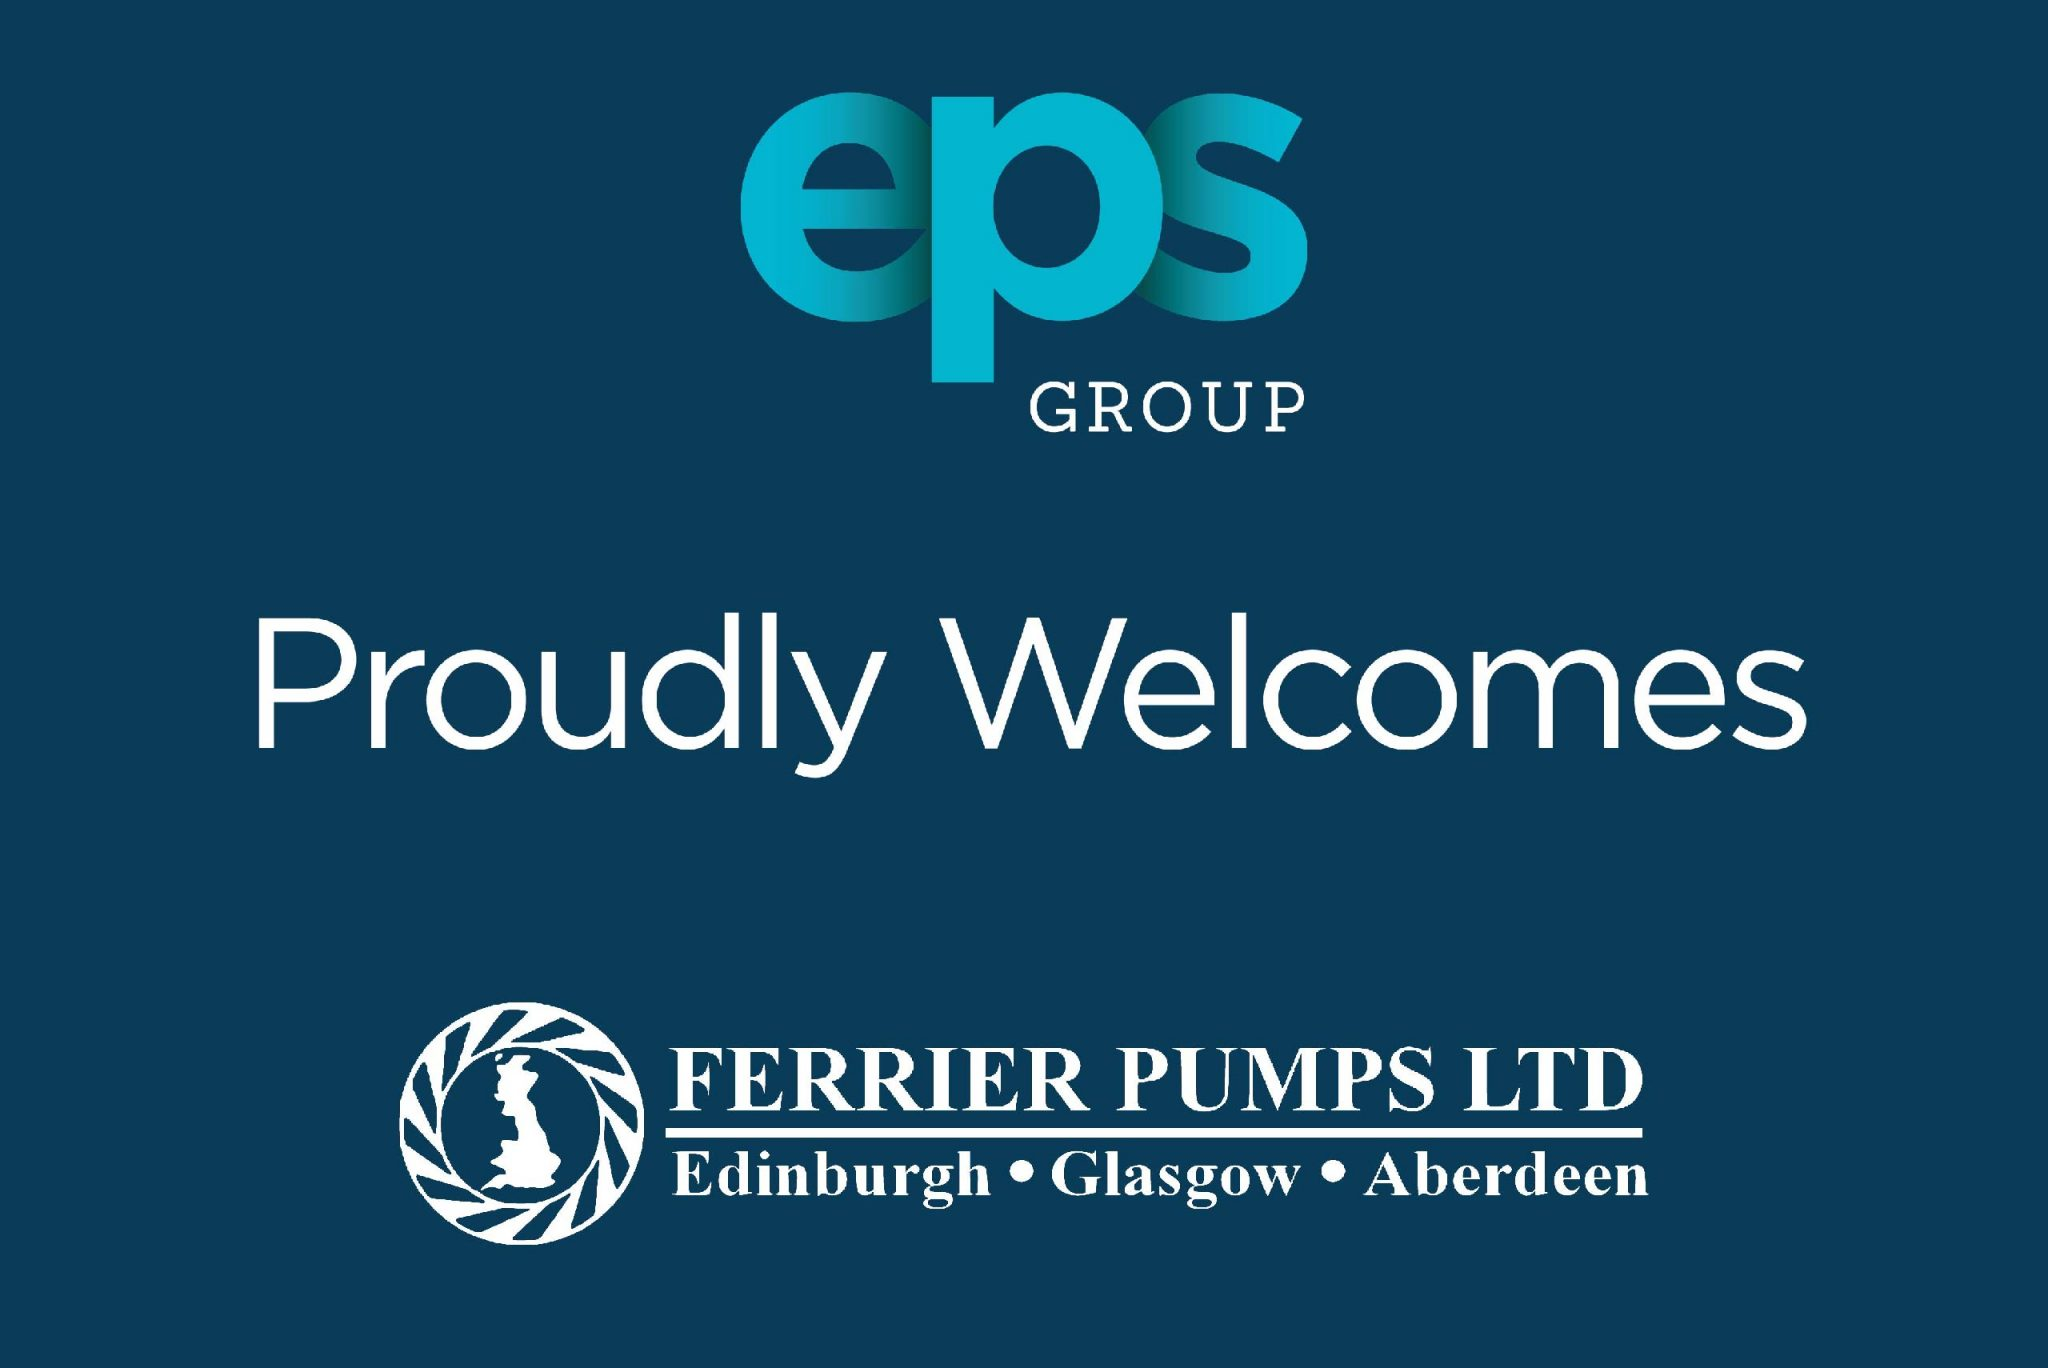 EPS Group Expands Footprint in UK